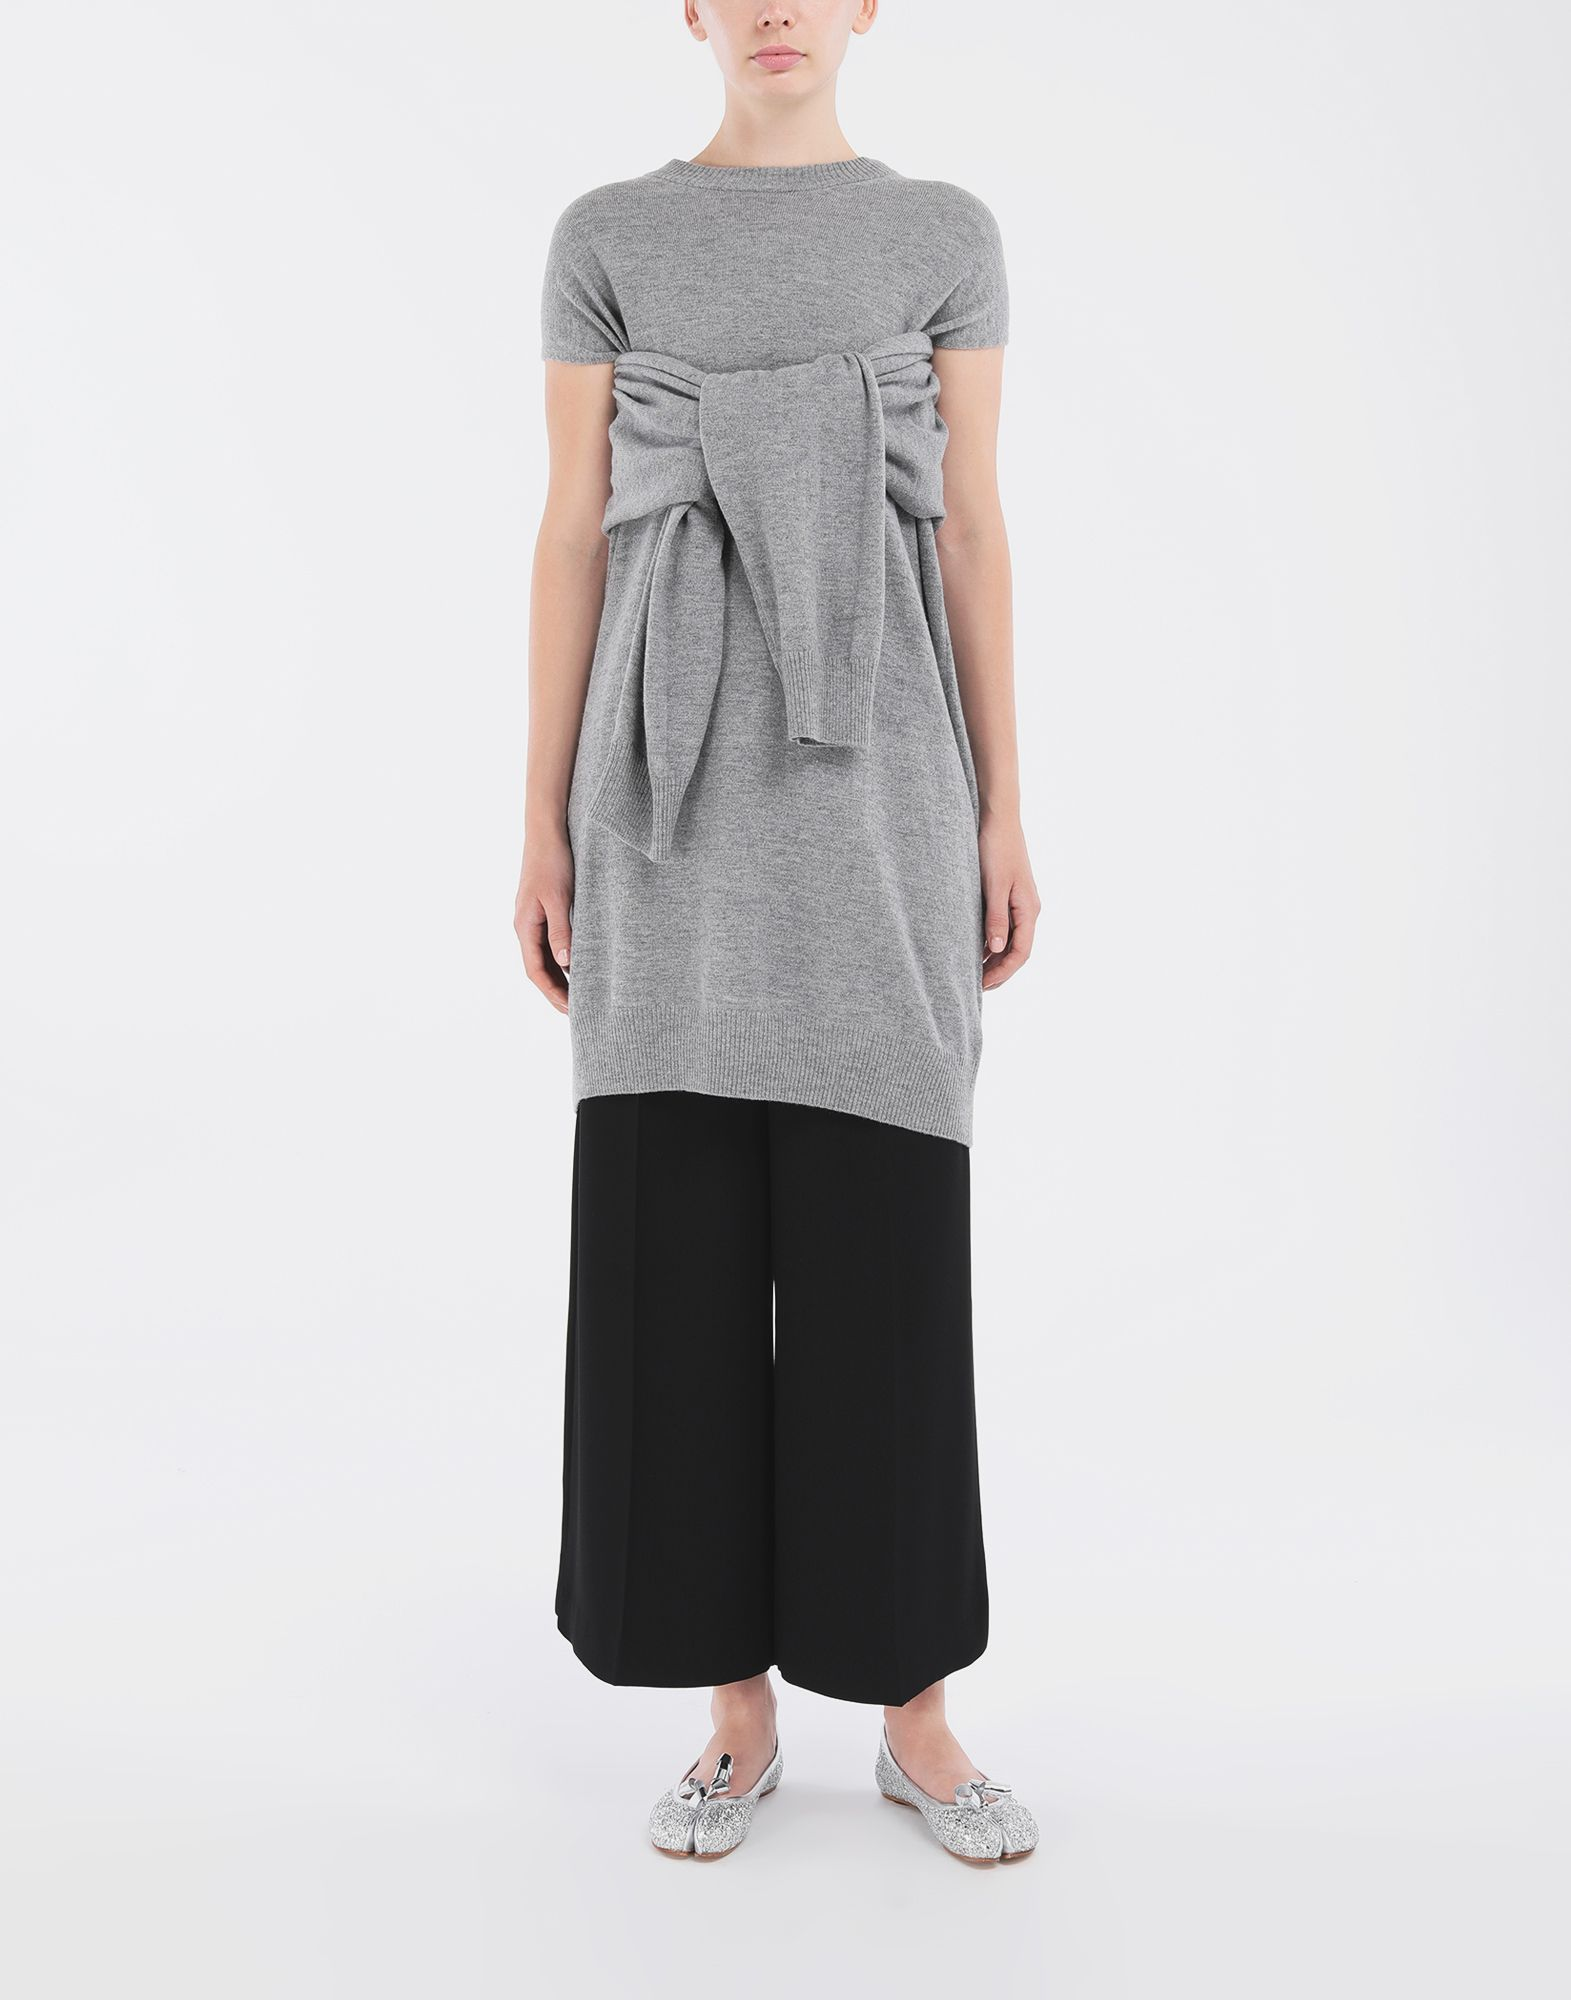 MAISON MARGIELA Sweater cut-out dress Short dress Woman d